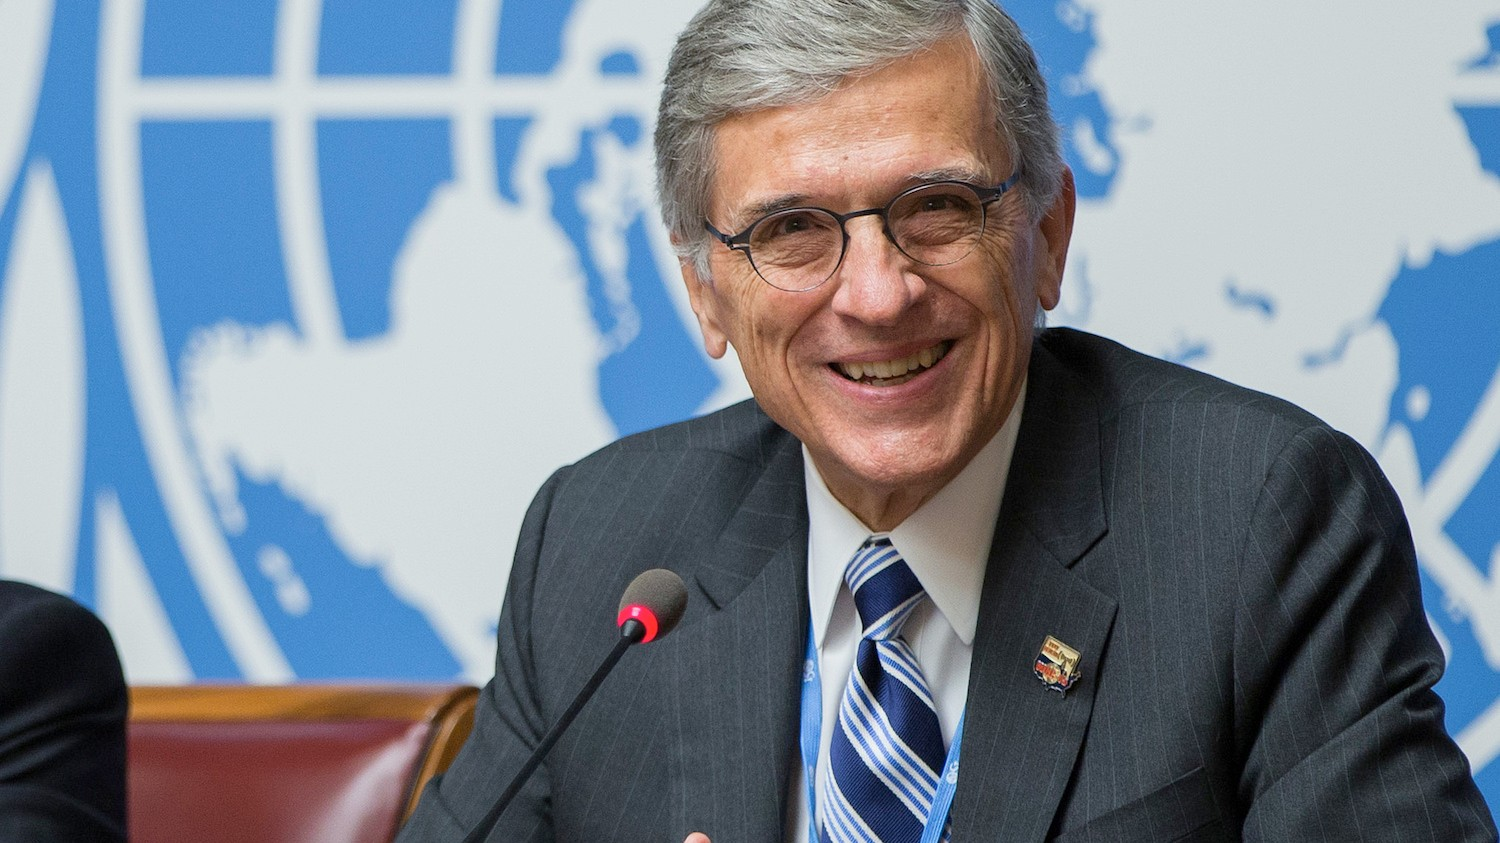 Big Telecom Wants a DC Circuit Net Neutrality Review. Here's Why That's Unlikely